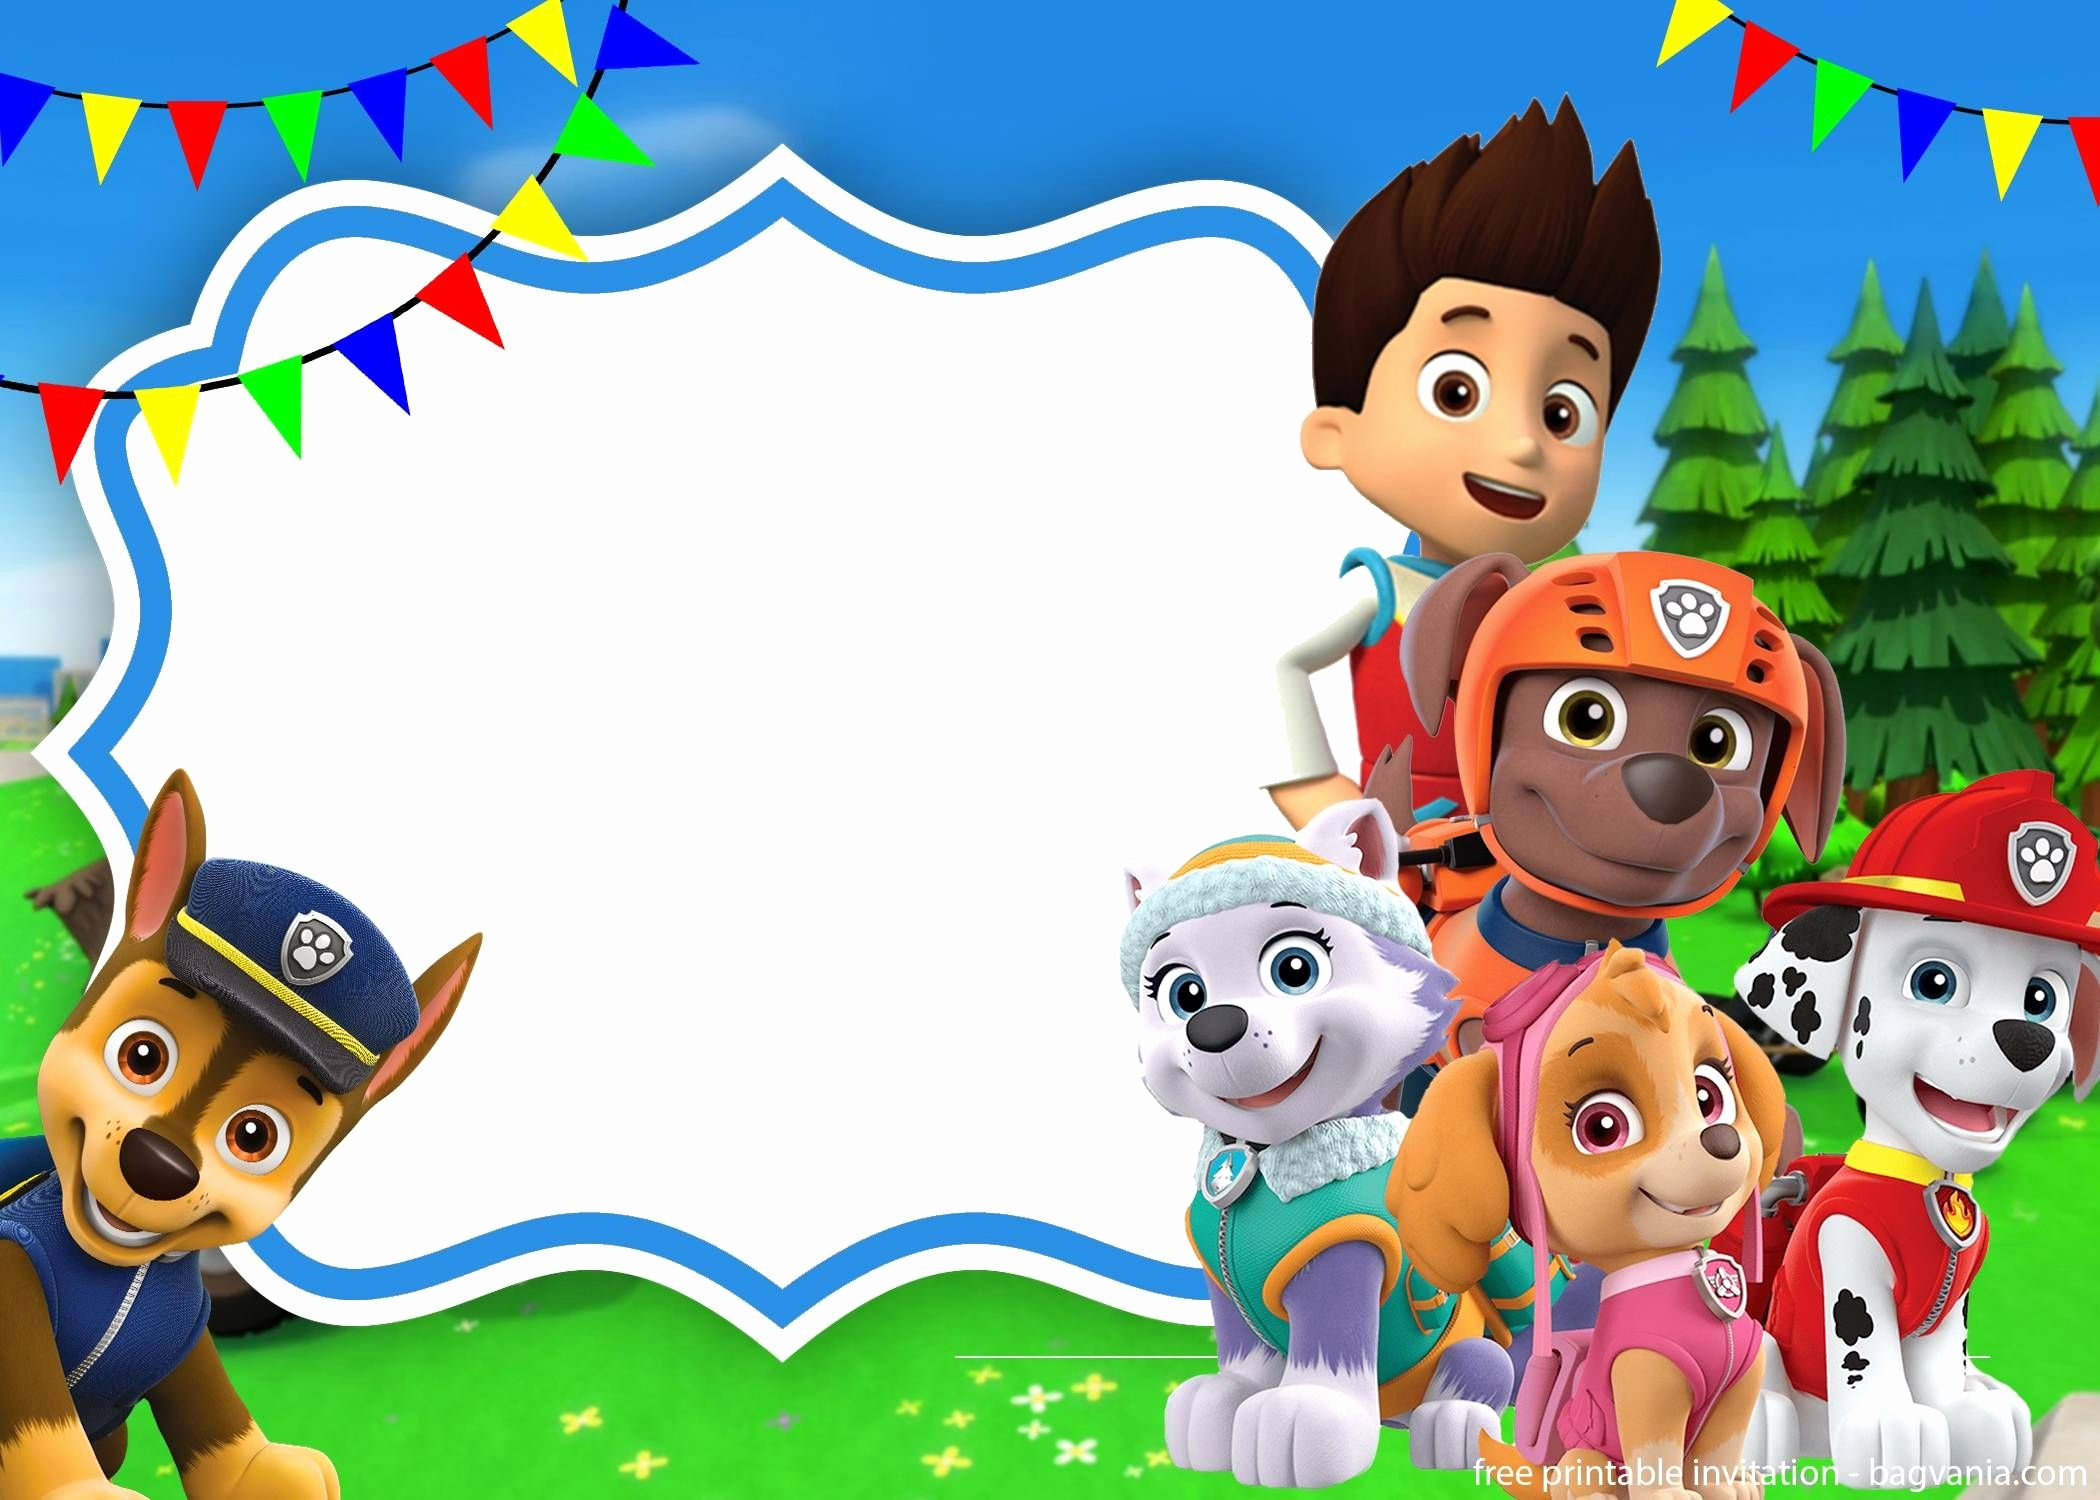 Paw Patrol Invitation Template Free Elegant Paw Patrol Skye Invitation Template for Your Daughter S